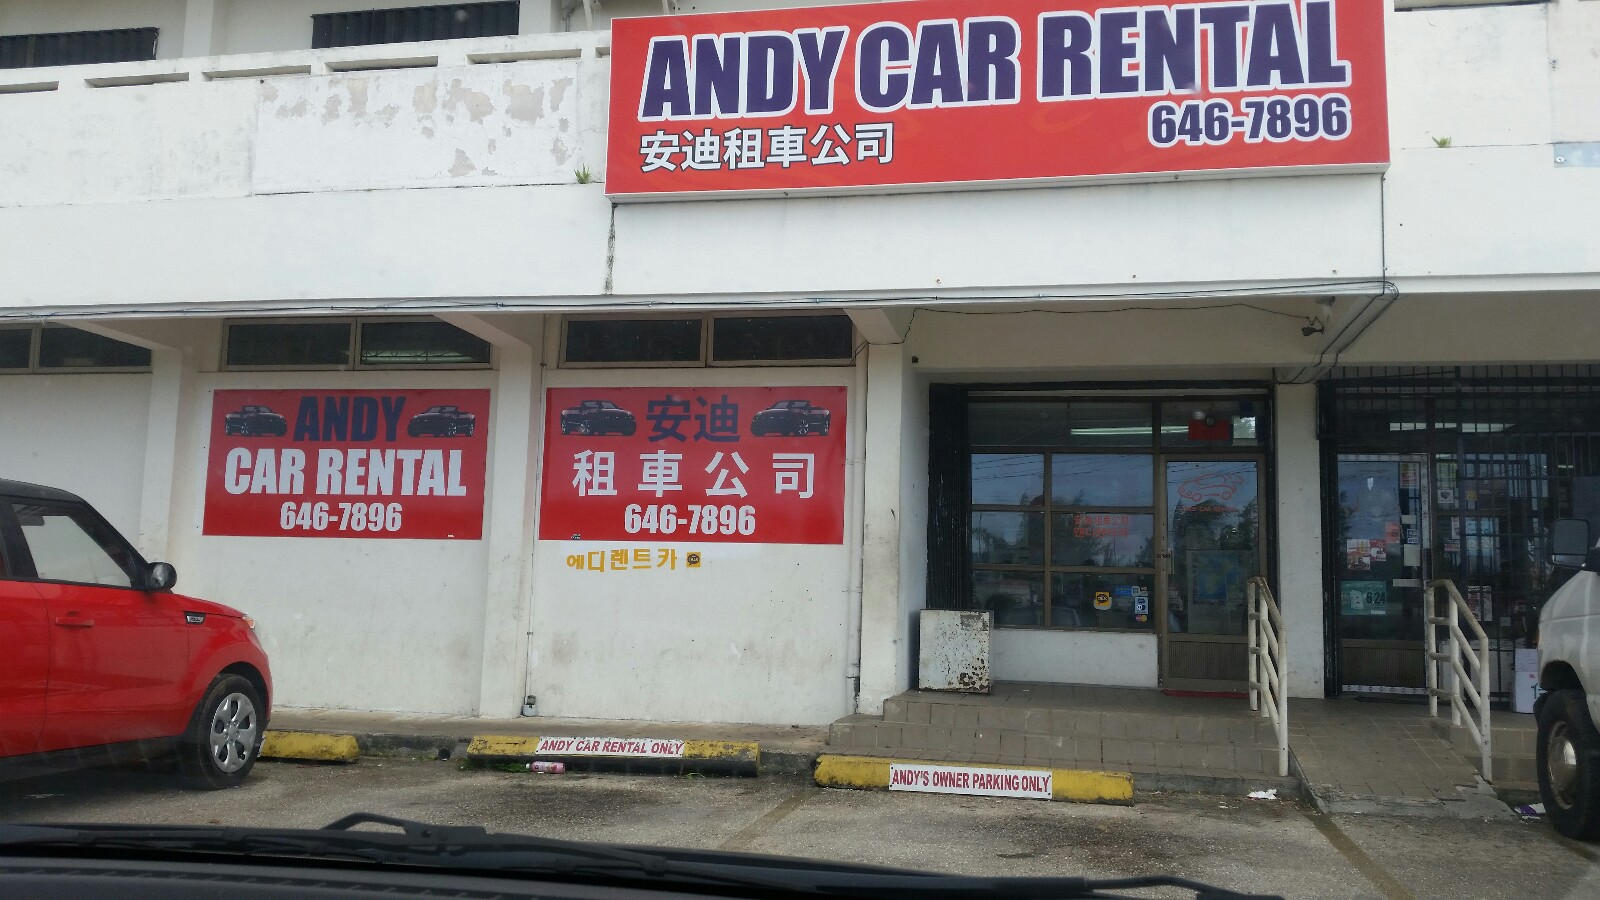 Guam Andy Car Rental